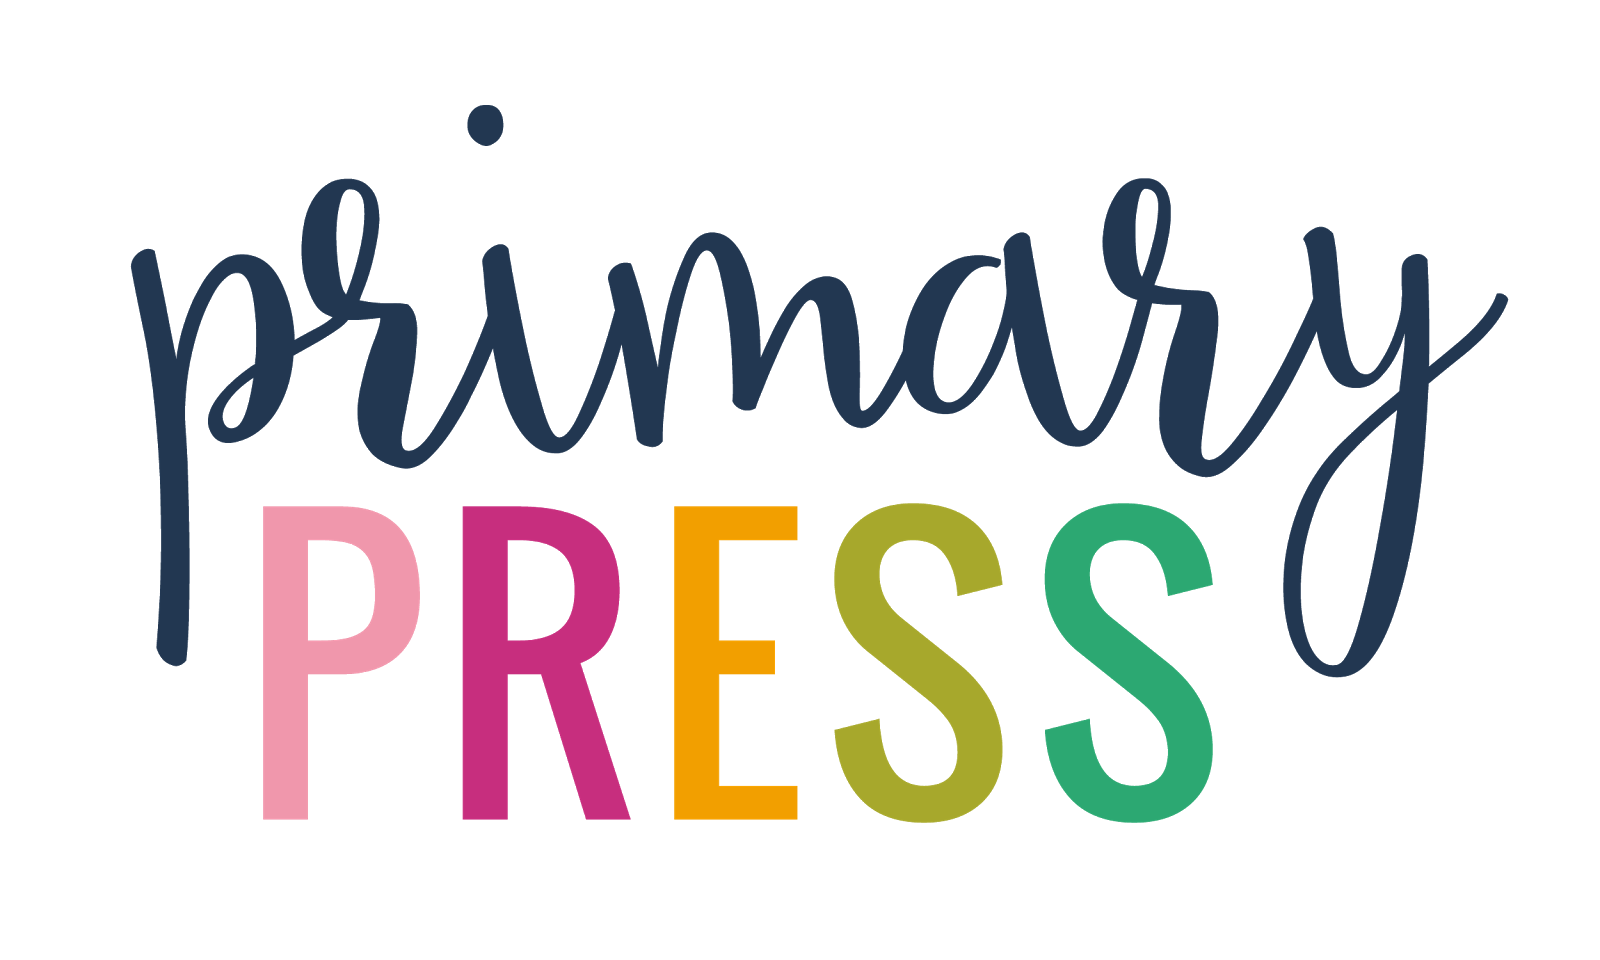 Primary Press